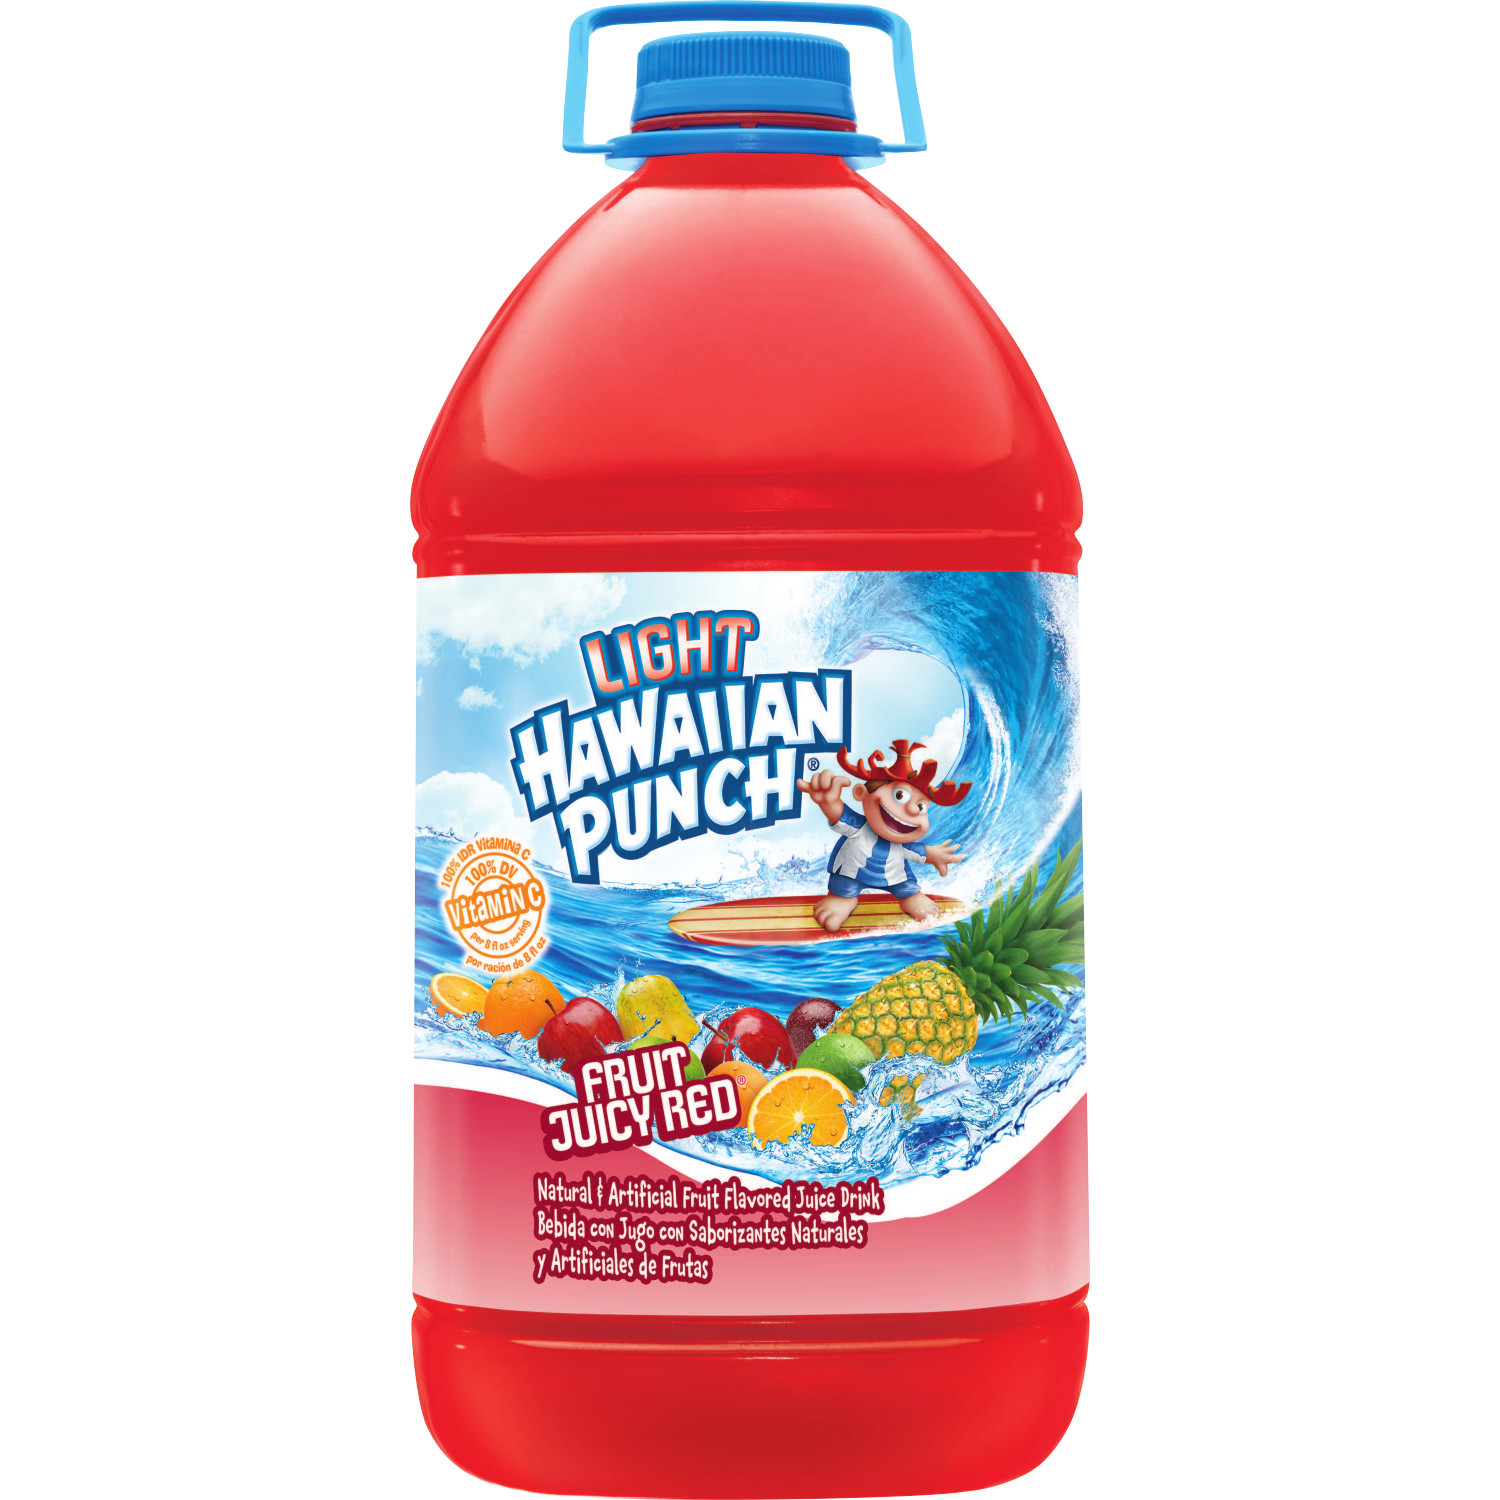 (2 Pack) Hawaiian Punch Light Juice, Juicy Red, 128 Fl Oz, 1 Count